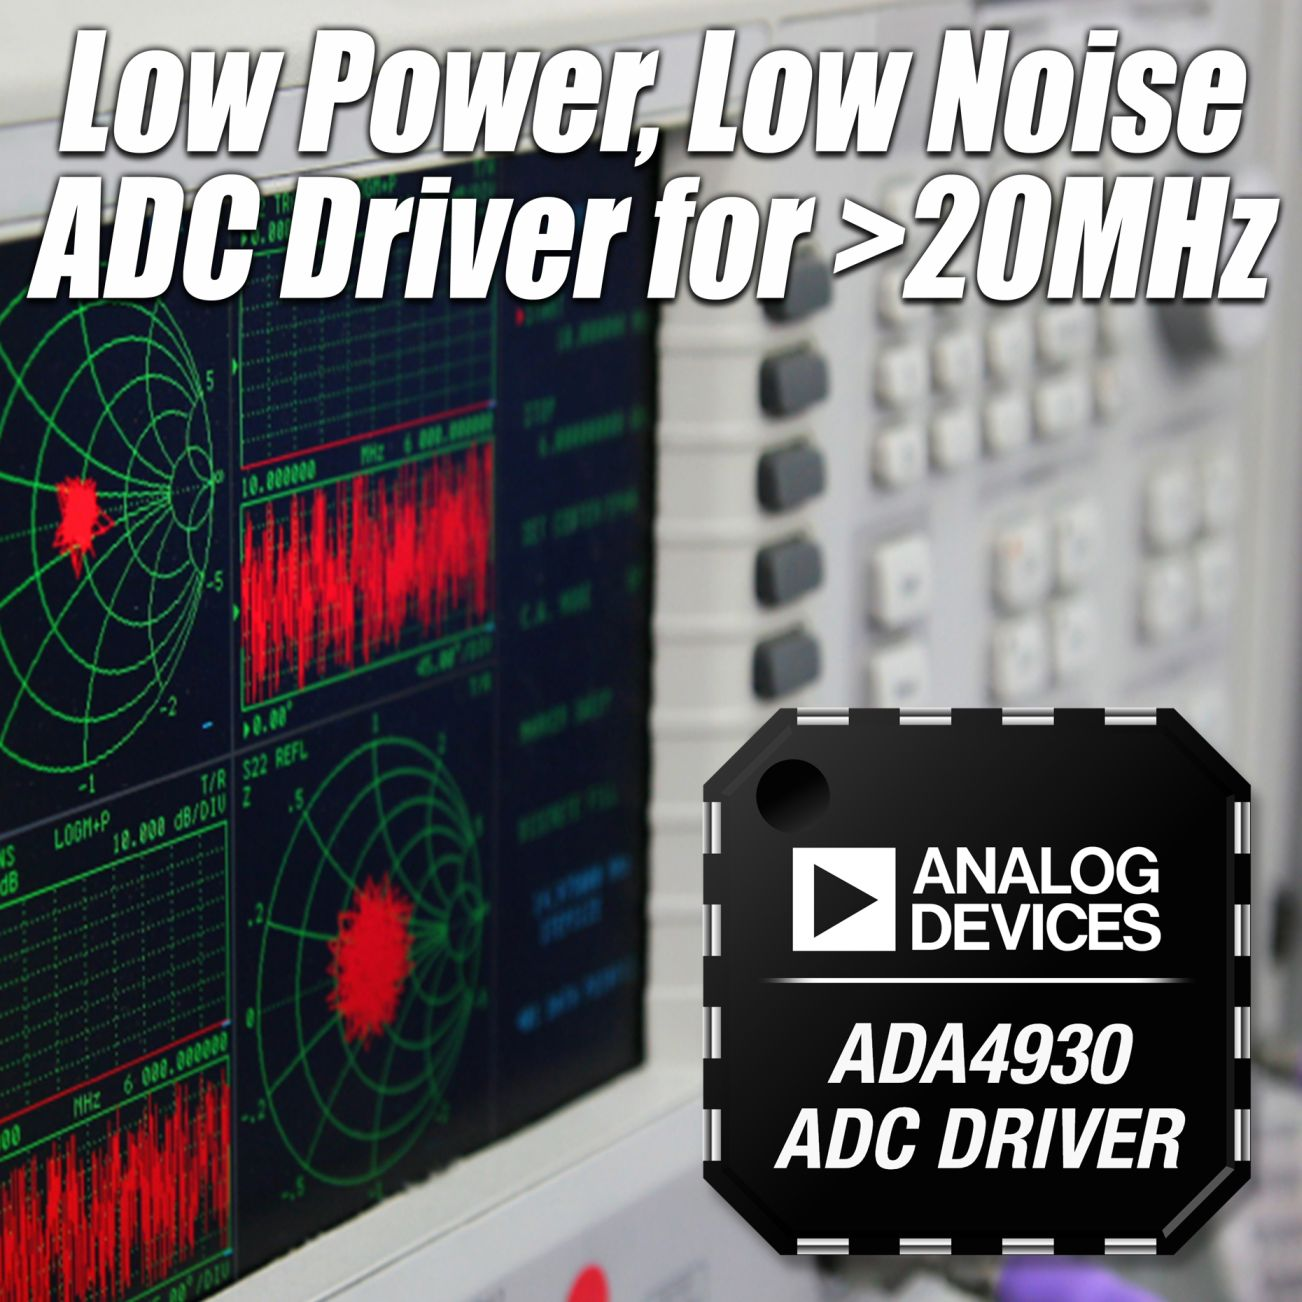 Analog Devices Releases Low-Power Single-Supply ADC Drivers for Low-Voltage, 14-Bit Converters